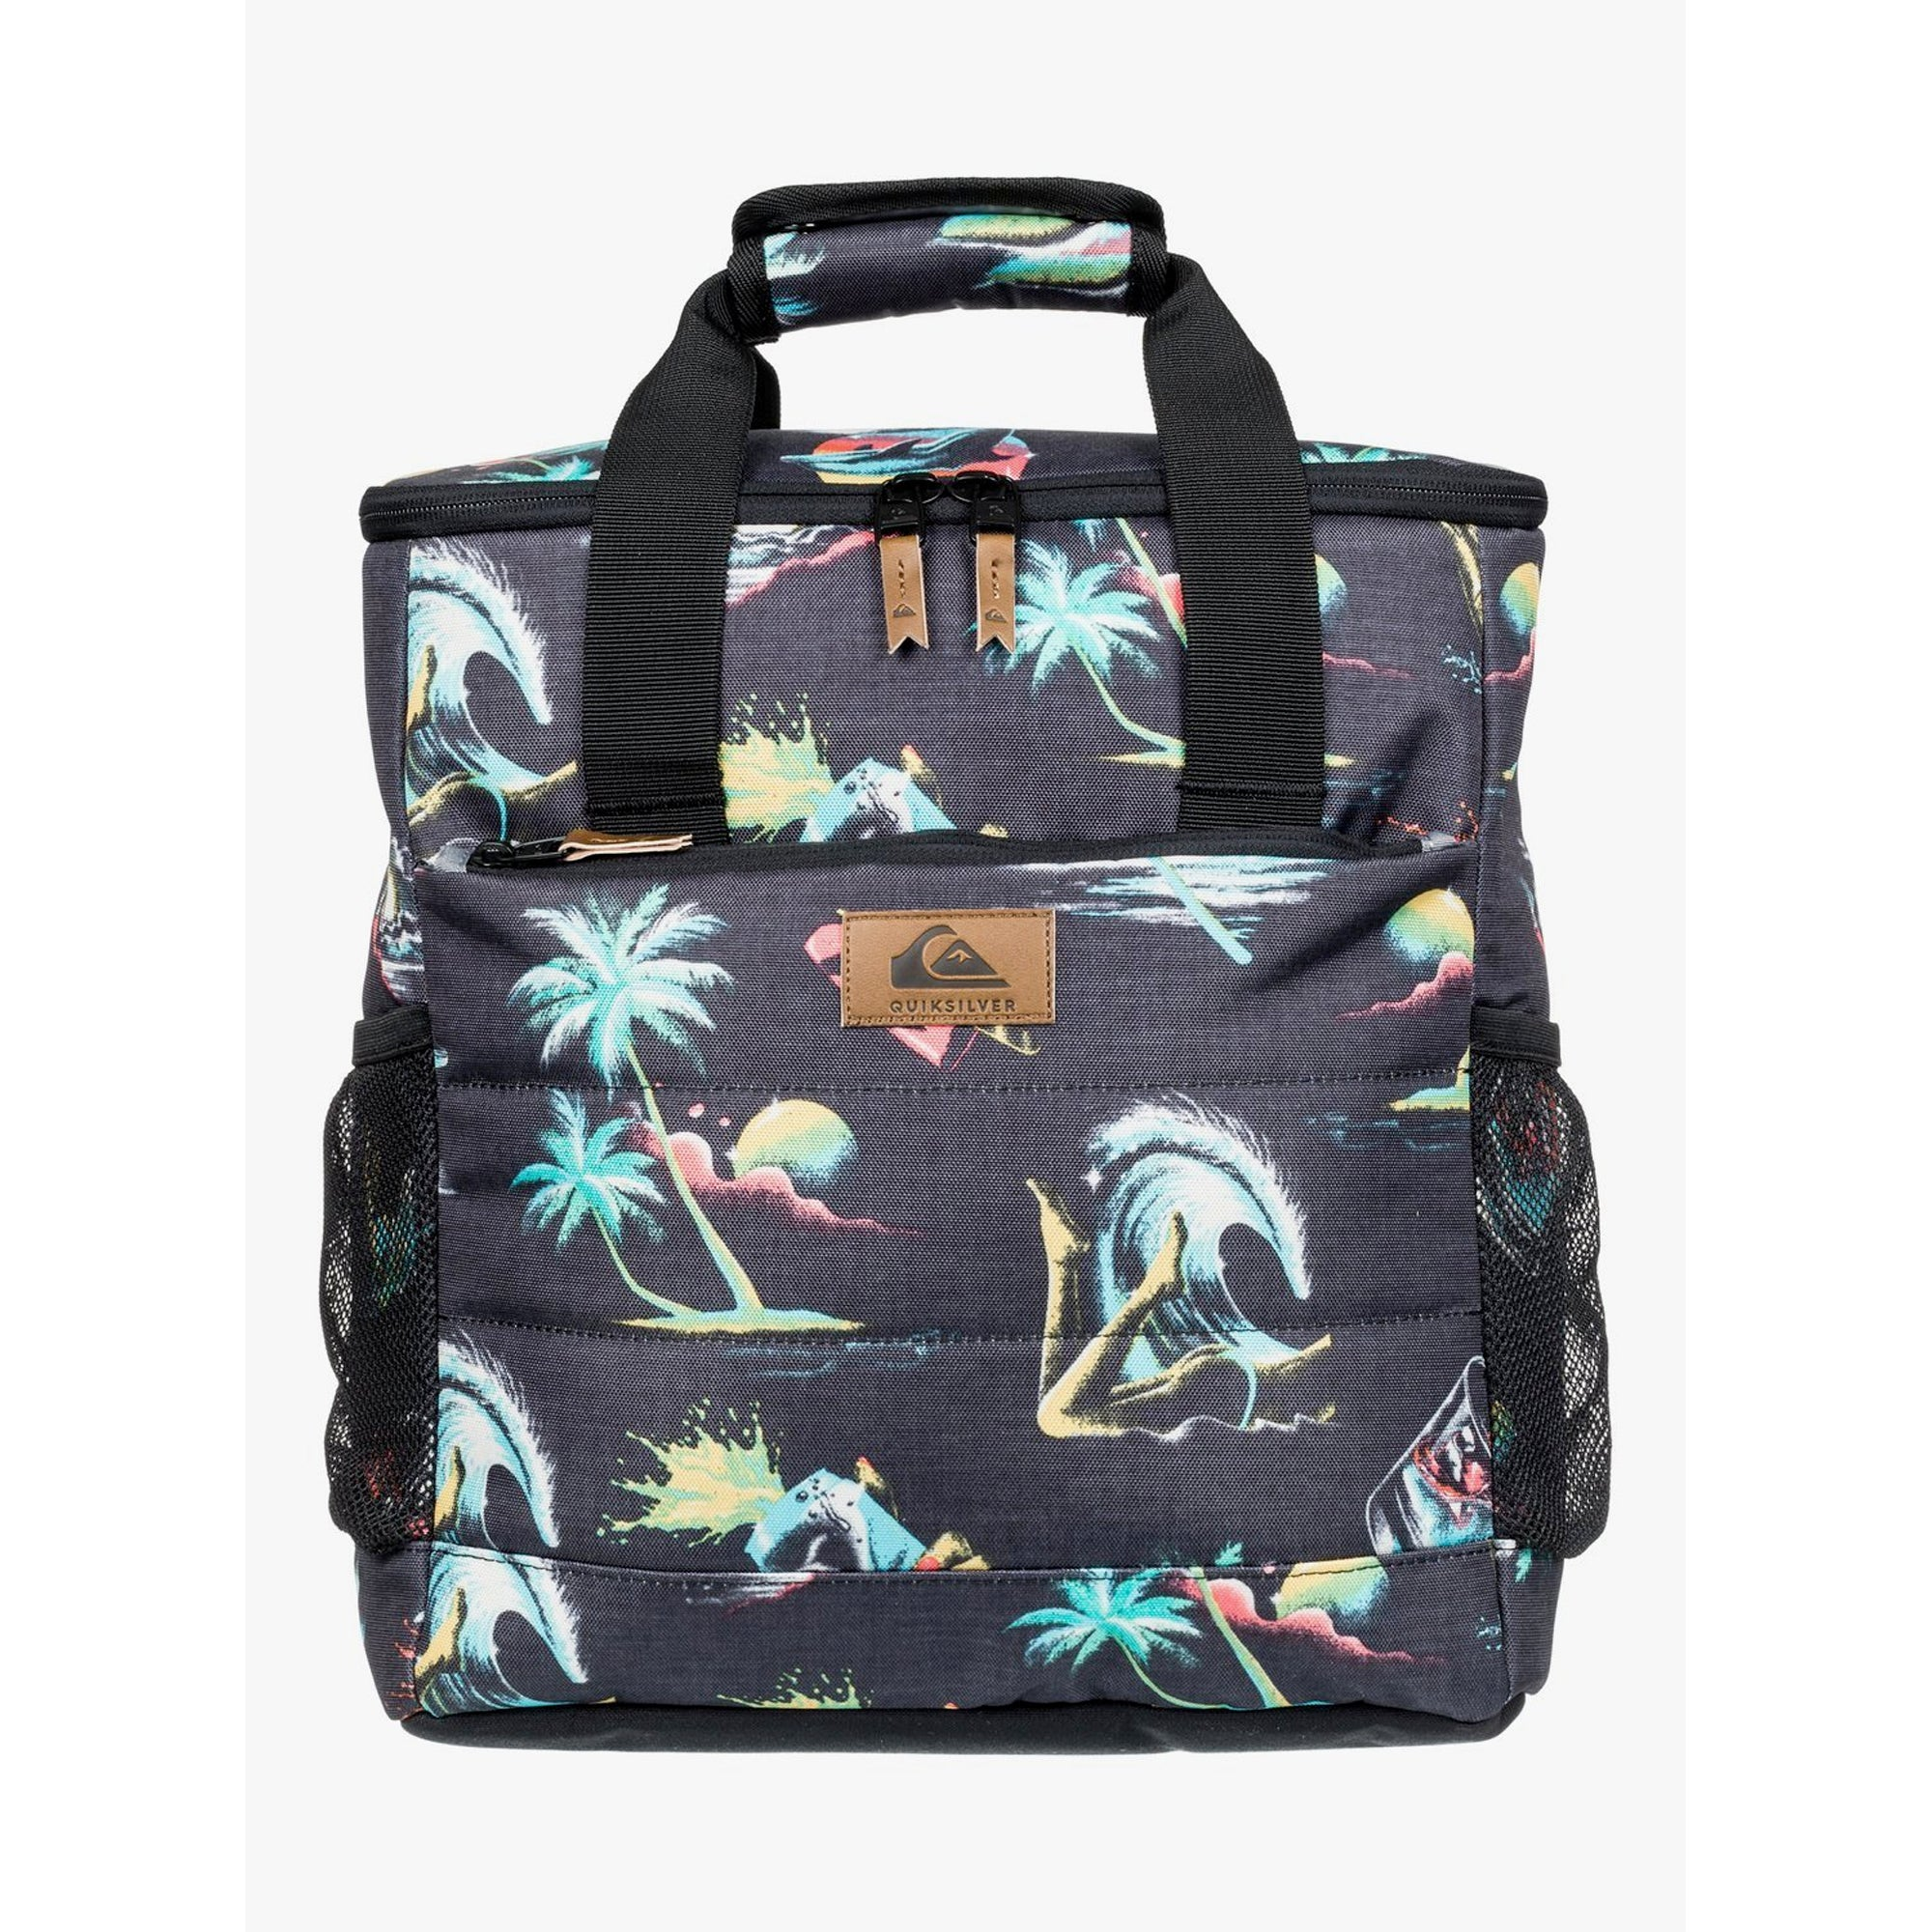 Quiksilver Seabeach Medium Insulated Cooler Backpack